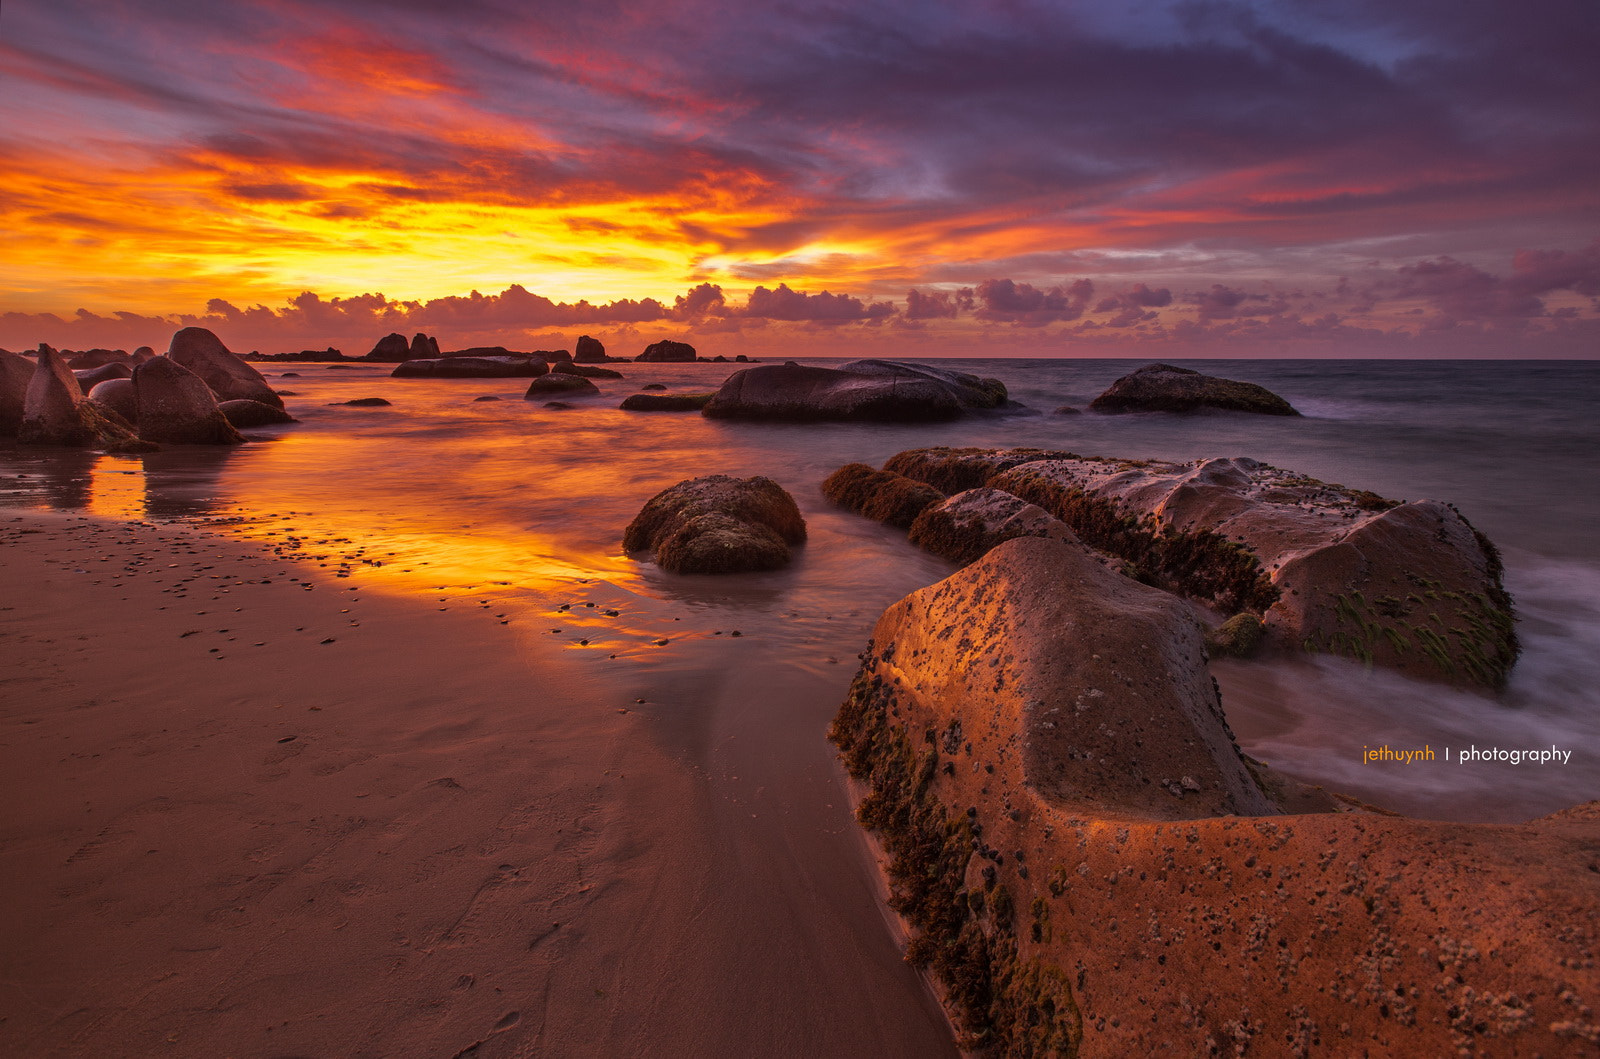 Photograph Sunrise by Jet Huynh on 500px